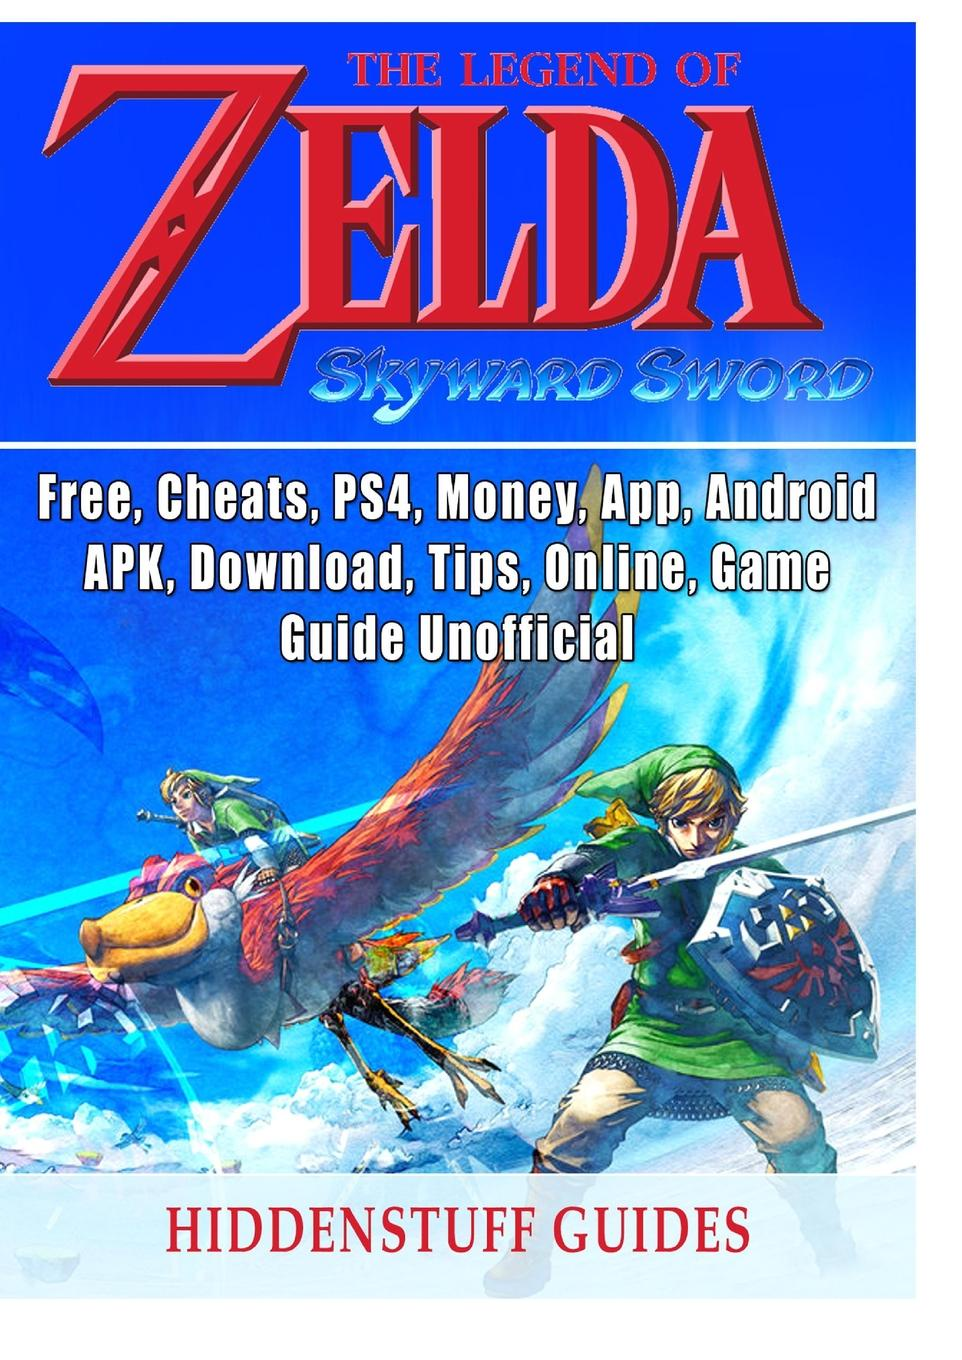 Hiddenstuff Guides. Legend of Zelda Skyward Sword, Switch, Wii, Walkthrough, Characters, Bosses, Amiibo, Items, Tips, Cheats, Game Guide Unofficial